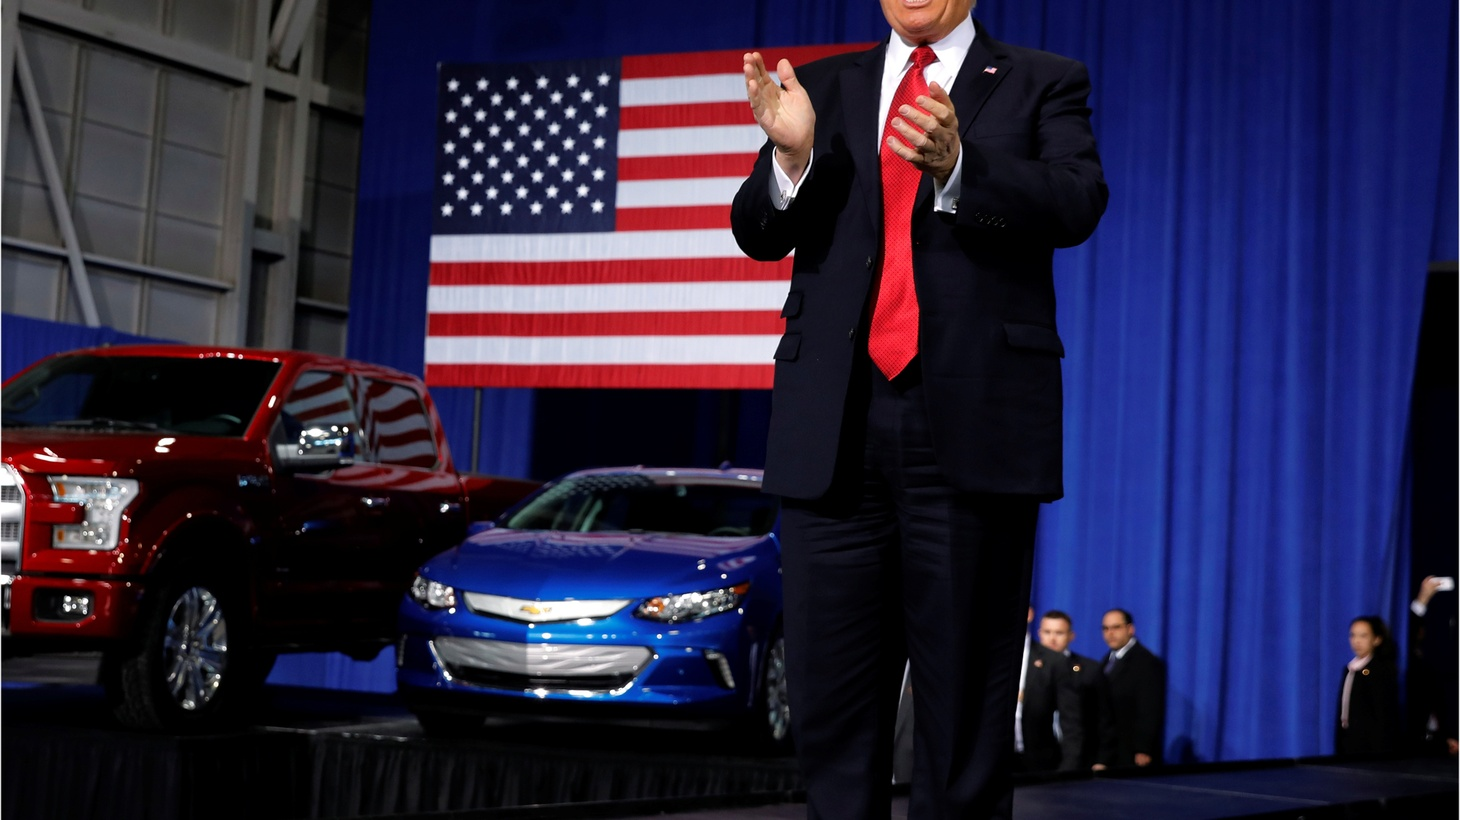 With President Trump unveiling lower fuel economy standards, will carmakers build more gas guzzlers? Also, an investigation looks into the risks of shipping nuclear warheads across the country on old 18 wheelers, driven by underpaid and overworked drivers. And, six years after Fukushima, nuclear waste has reached parts of the U.S. west coast.